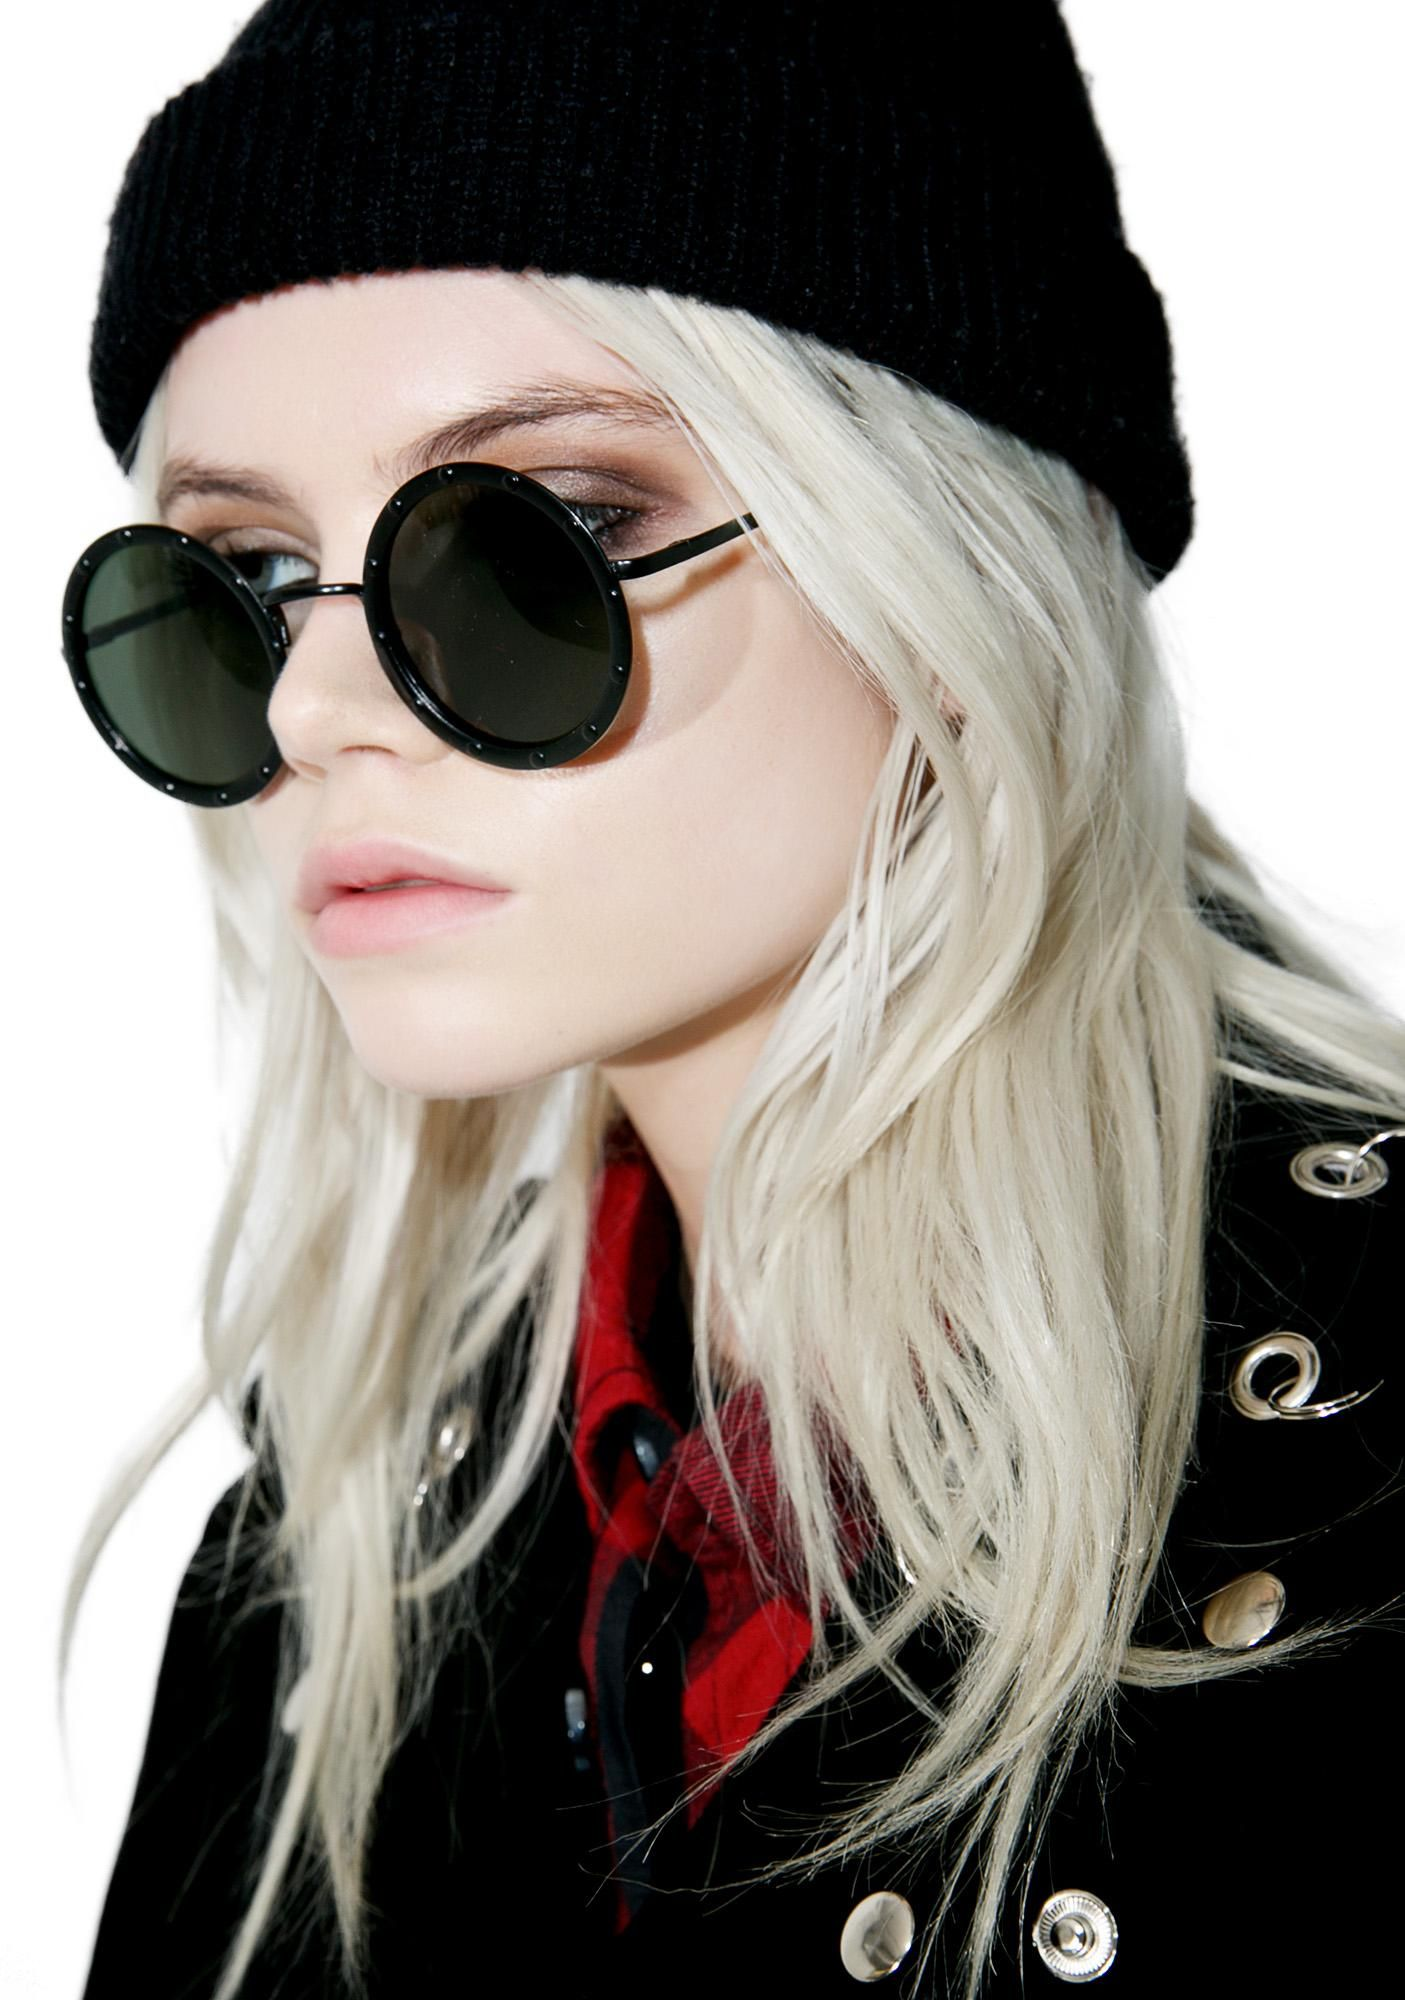 Blackout Johnny Sunglasses cuz it's a hard daze night, but it didn't stop you from lookin' pretty. These wavy sunnies feature black round frames with studded accents, straight nose bar, and tinted grey lenses.